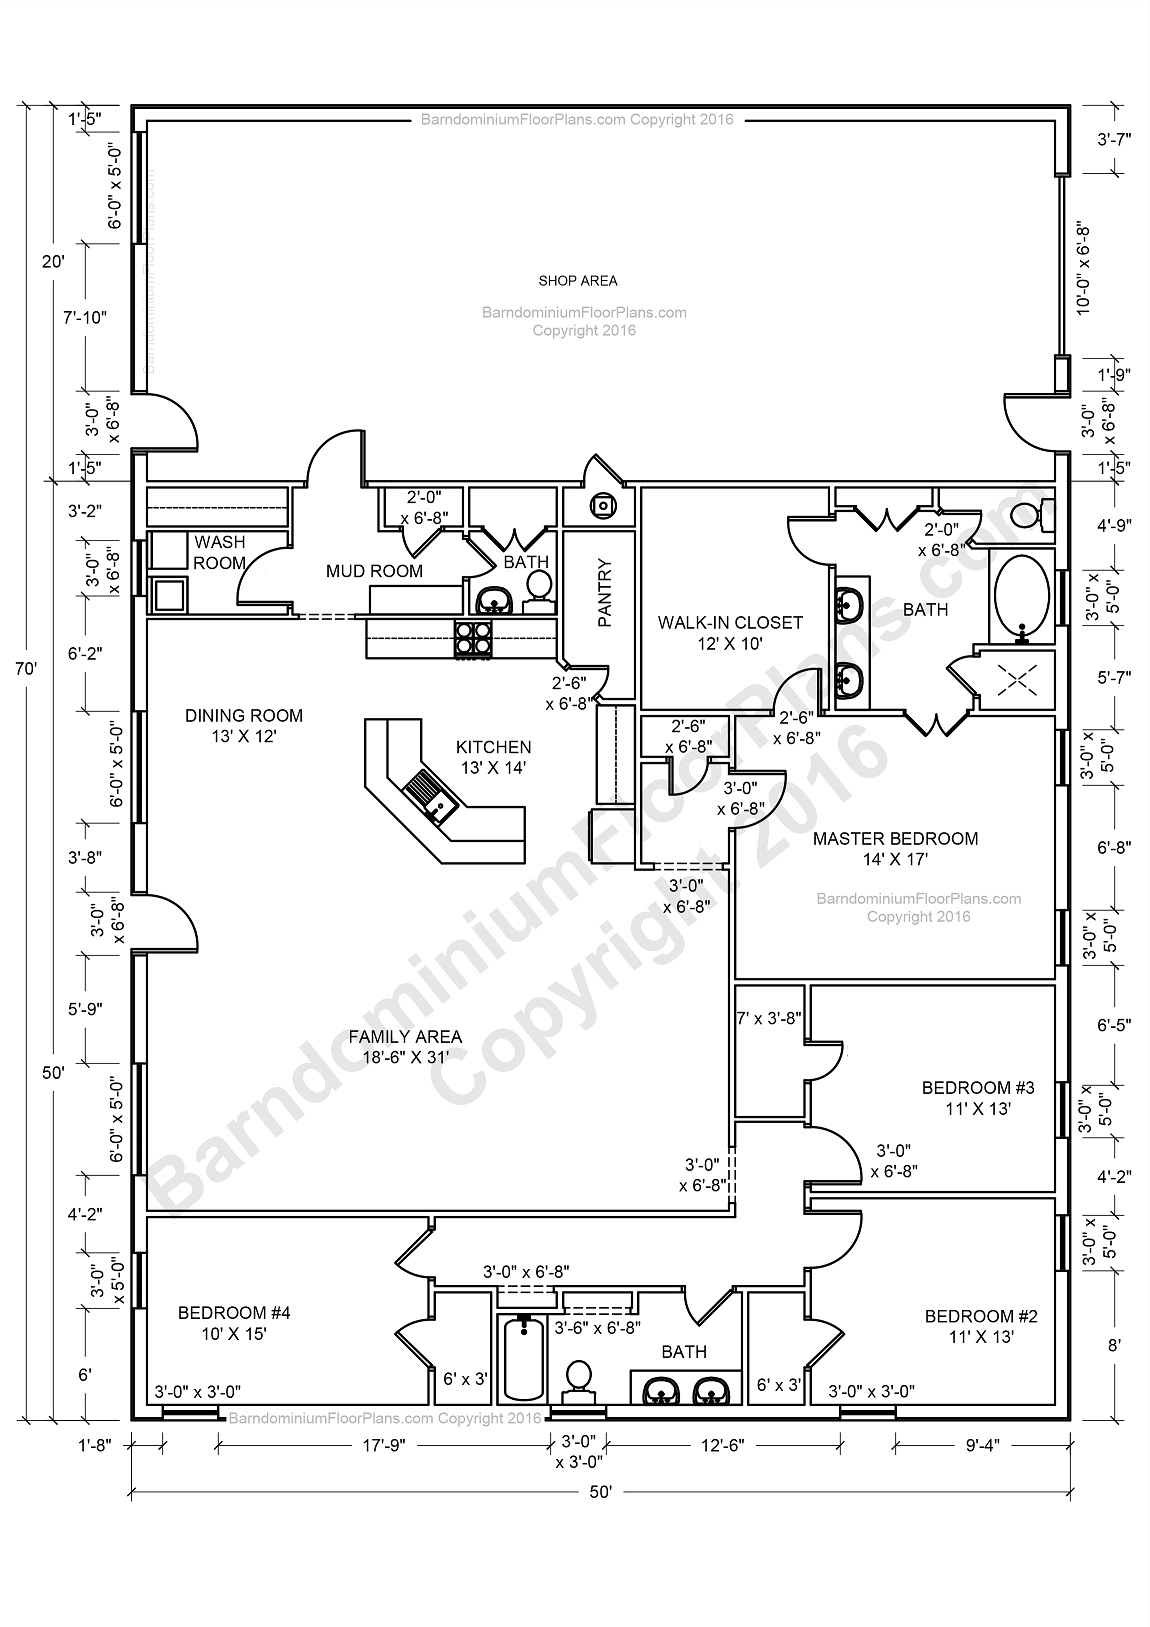 Awesome List Of Best Barndominium Floor Plans For Different Purpose #Barndominium  #BarnHomes Tags: Barndominium Home Design Ideas